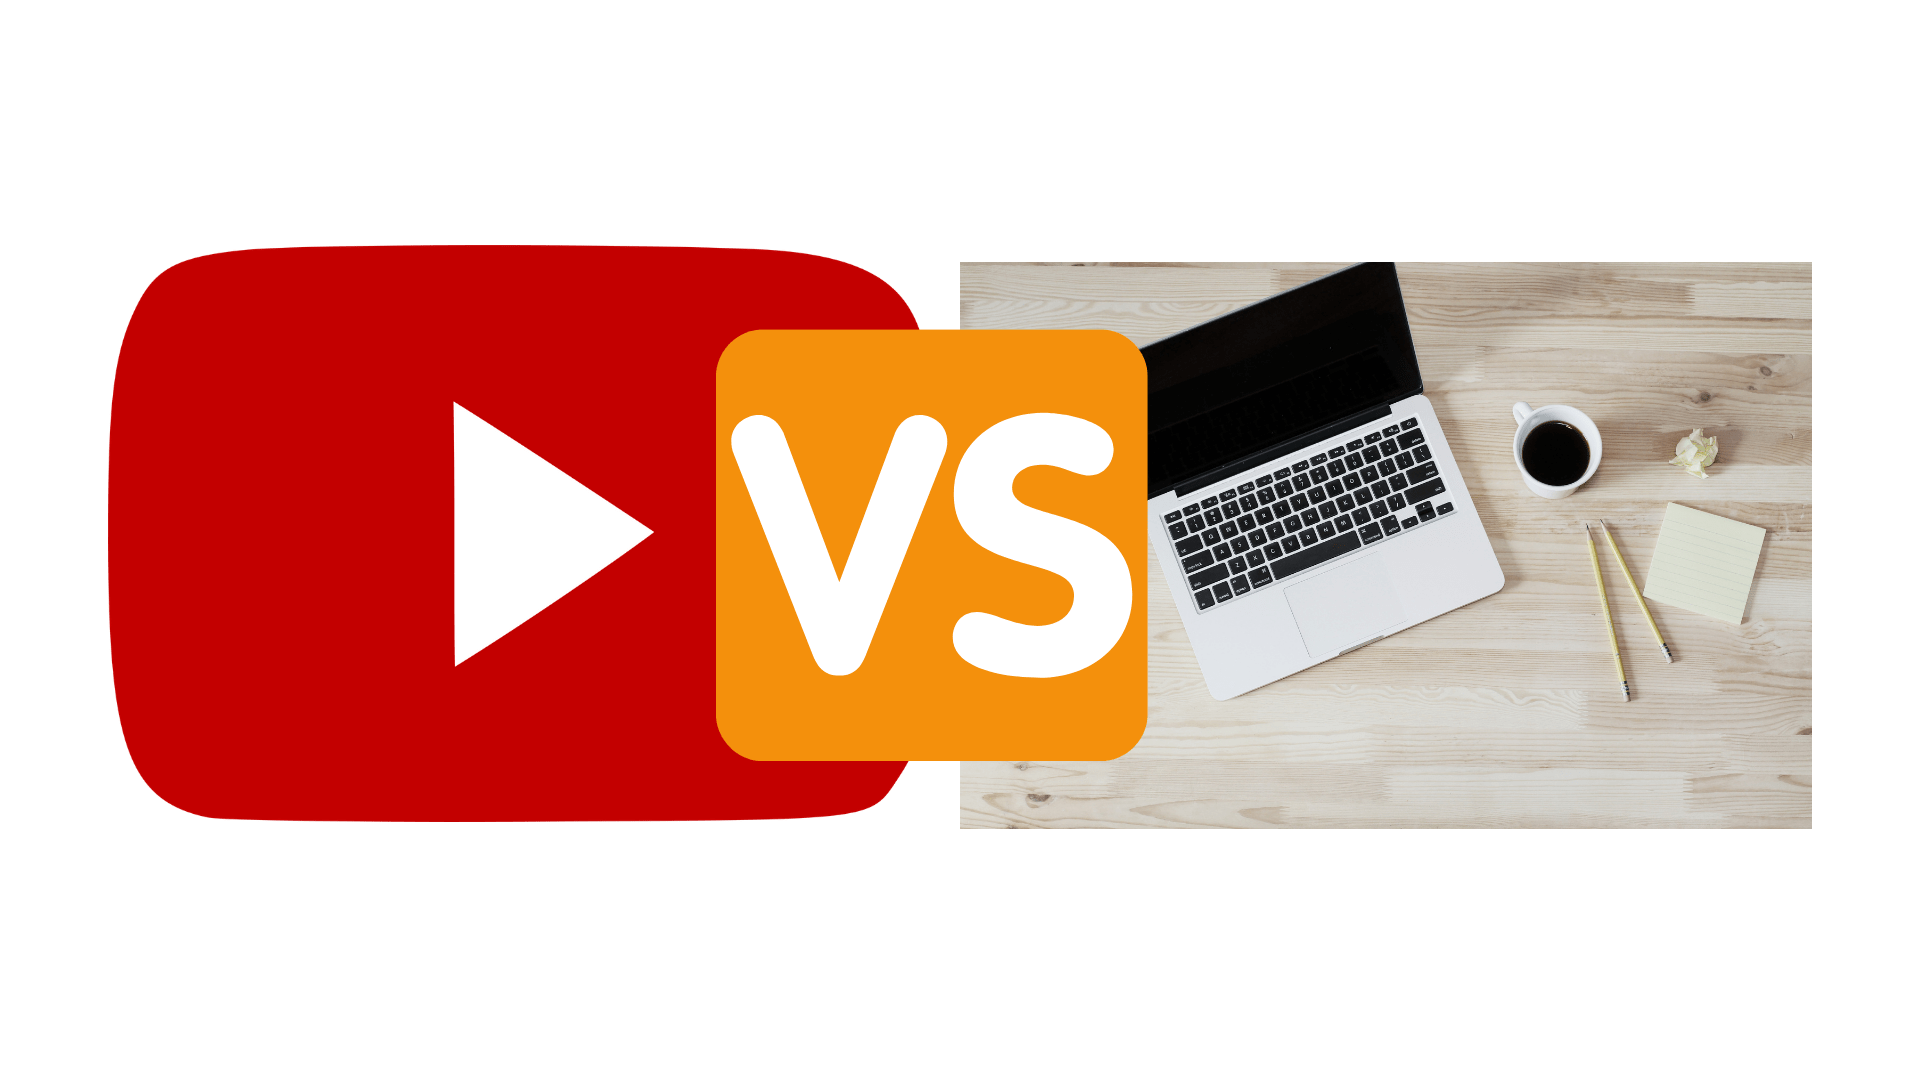 Comparison blogs vs youtube between reading articles online vs watching videos on YouTube